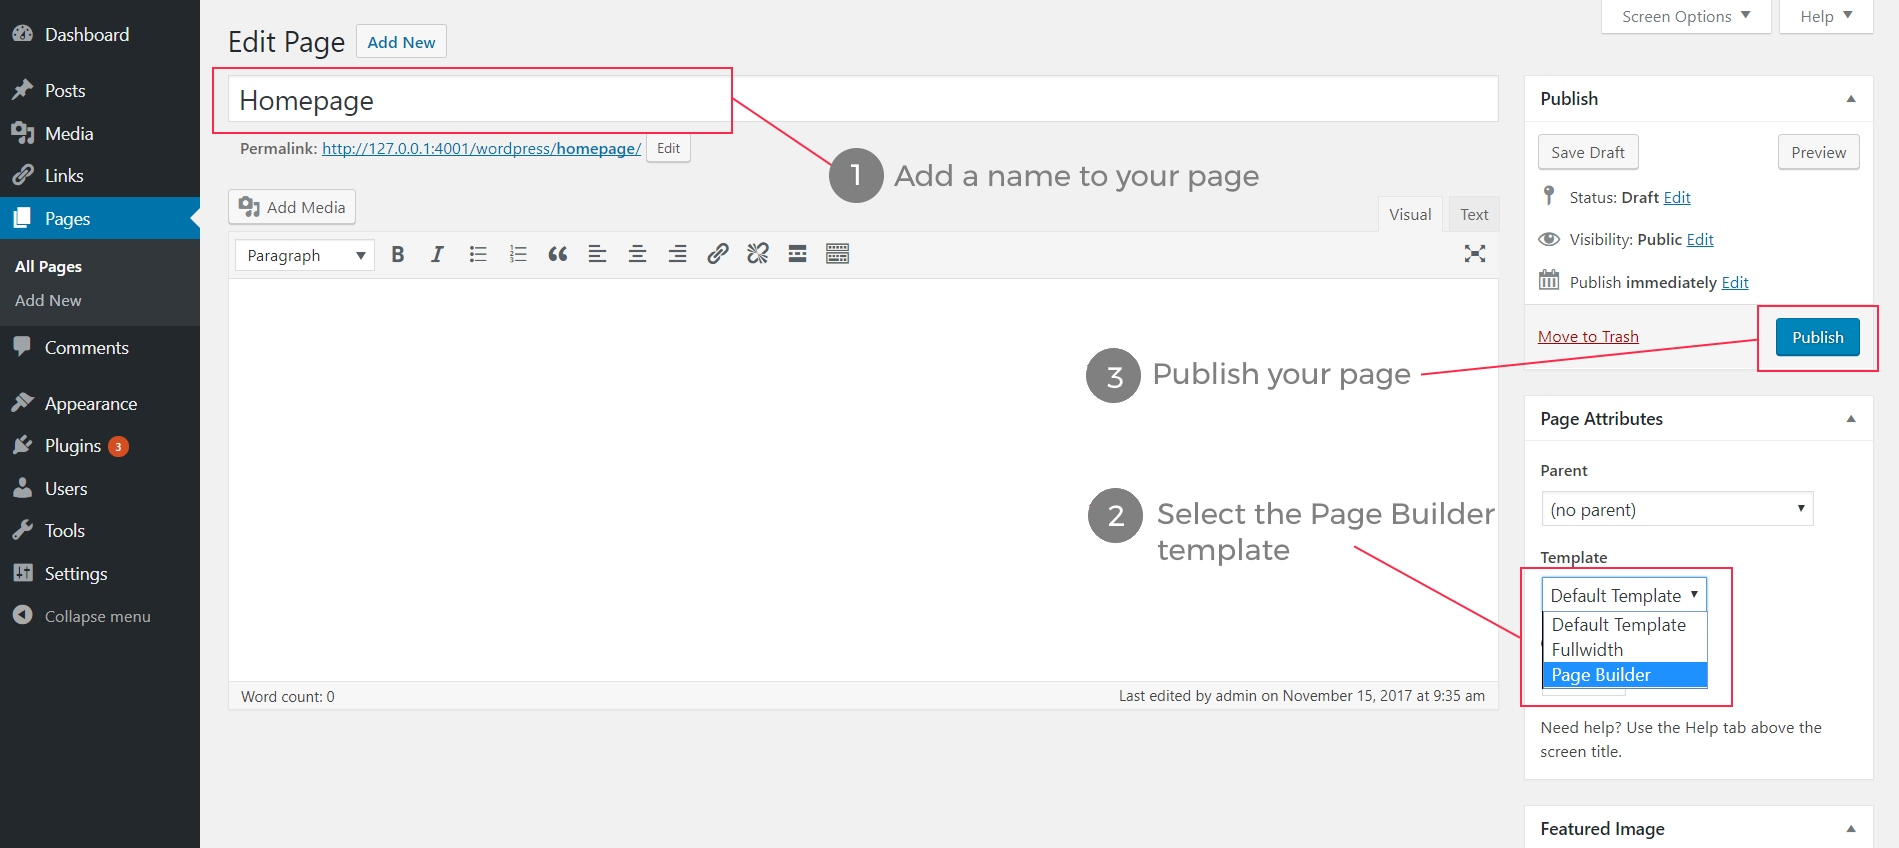 Assign-the-Page-Builder-page-template-to-that-page